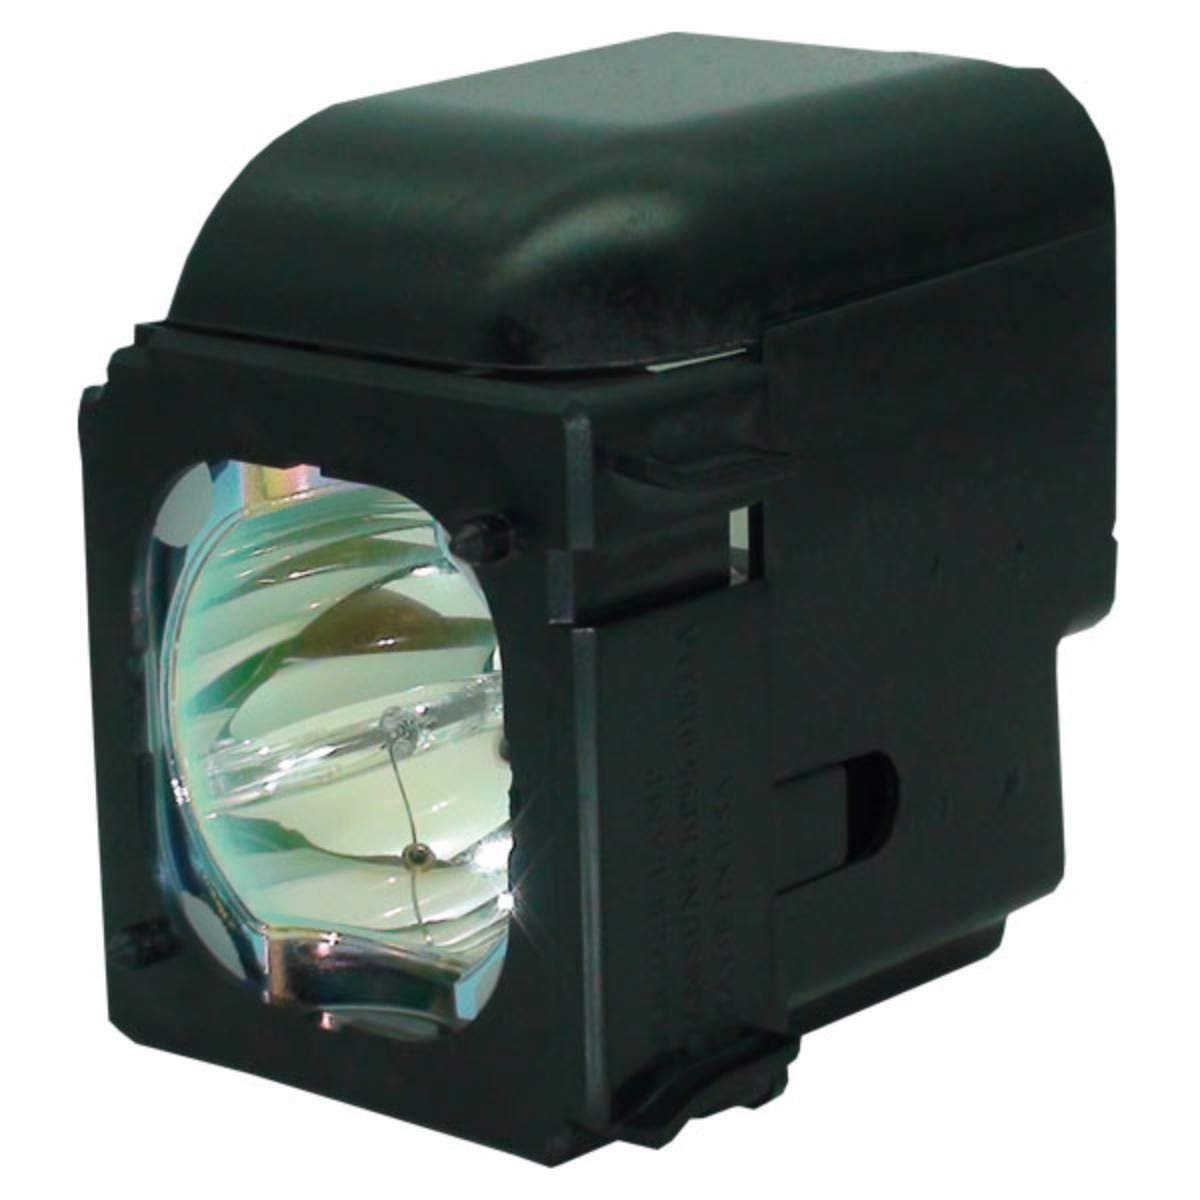 HL61A650 Lamp with Housing for Samsung TV [並行輸入品]   B07DLNP45H